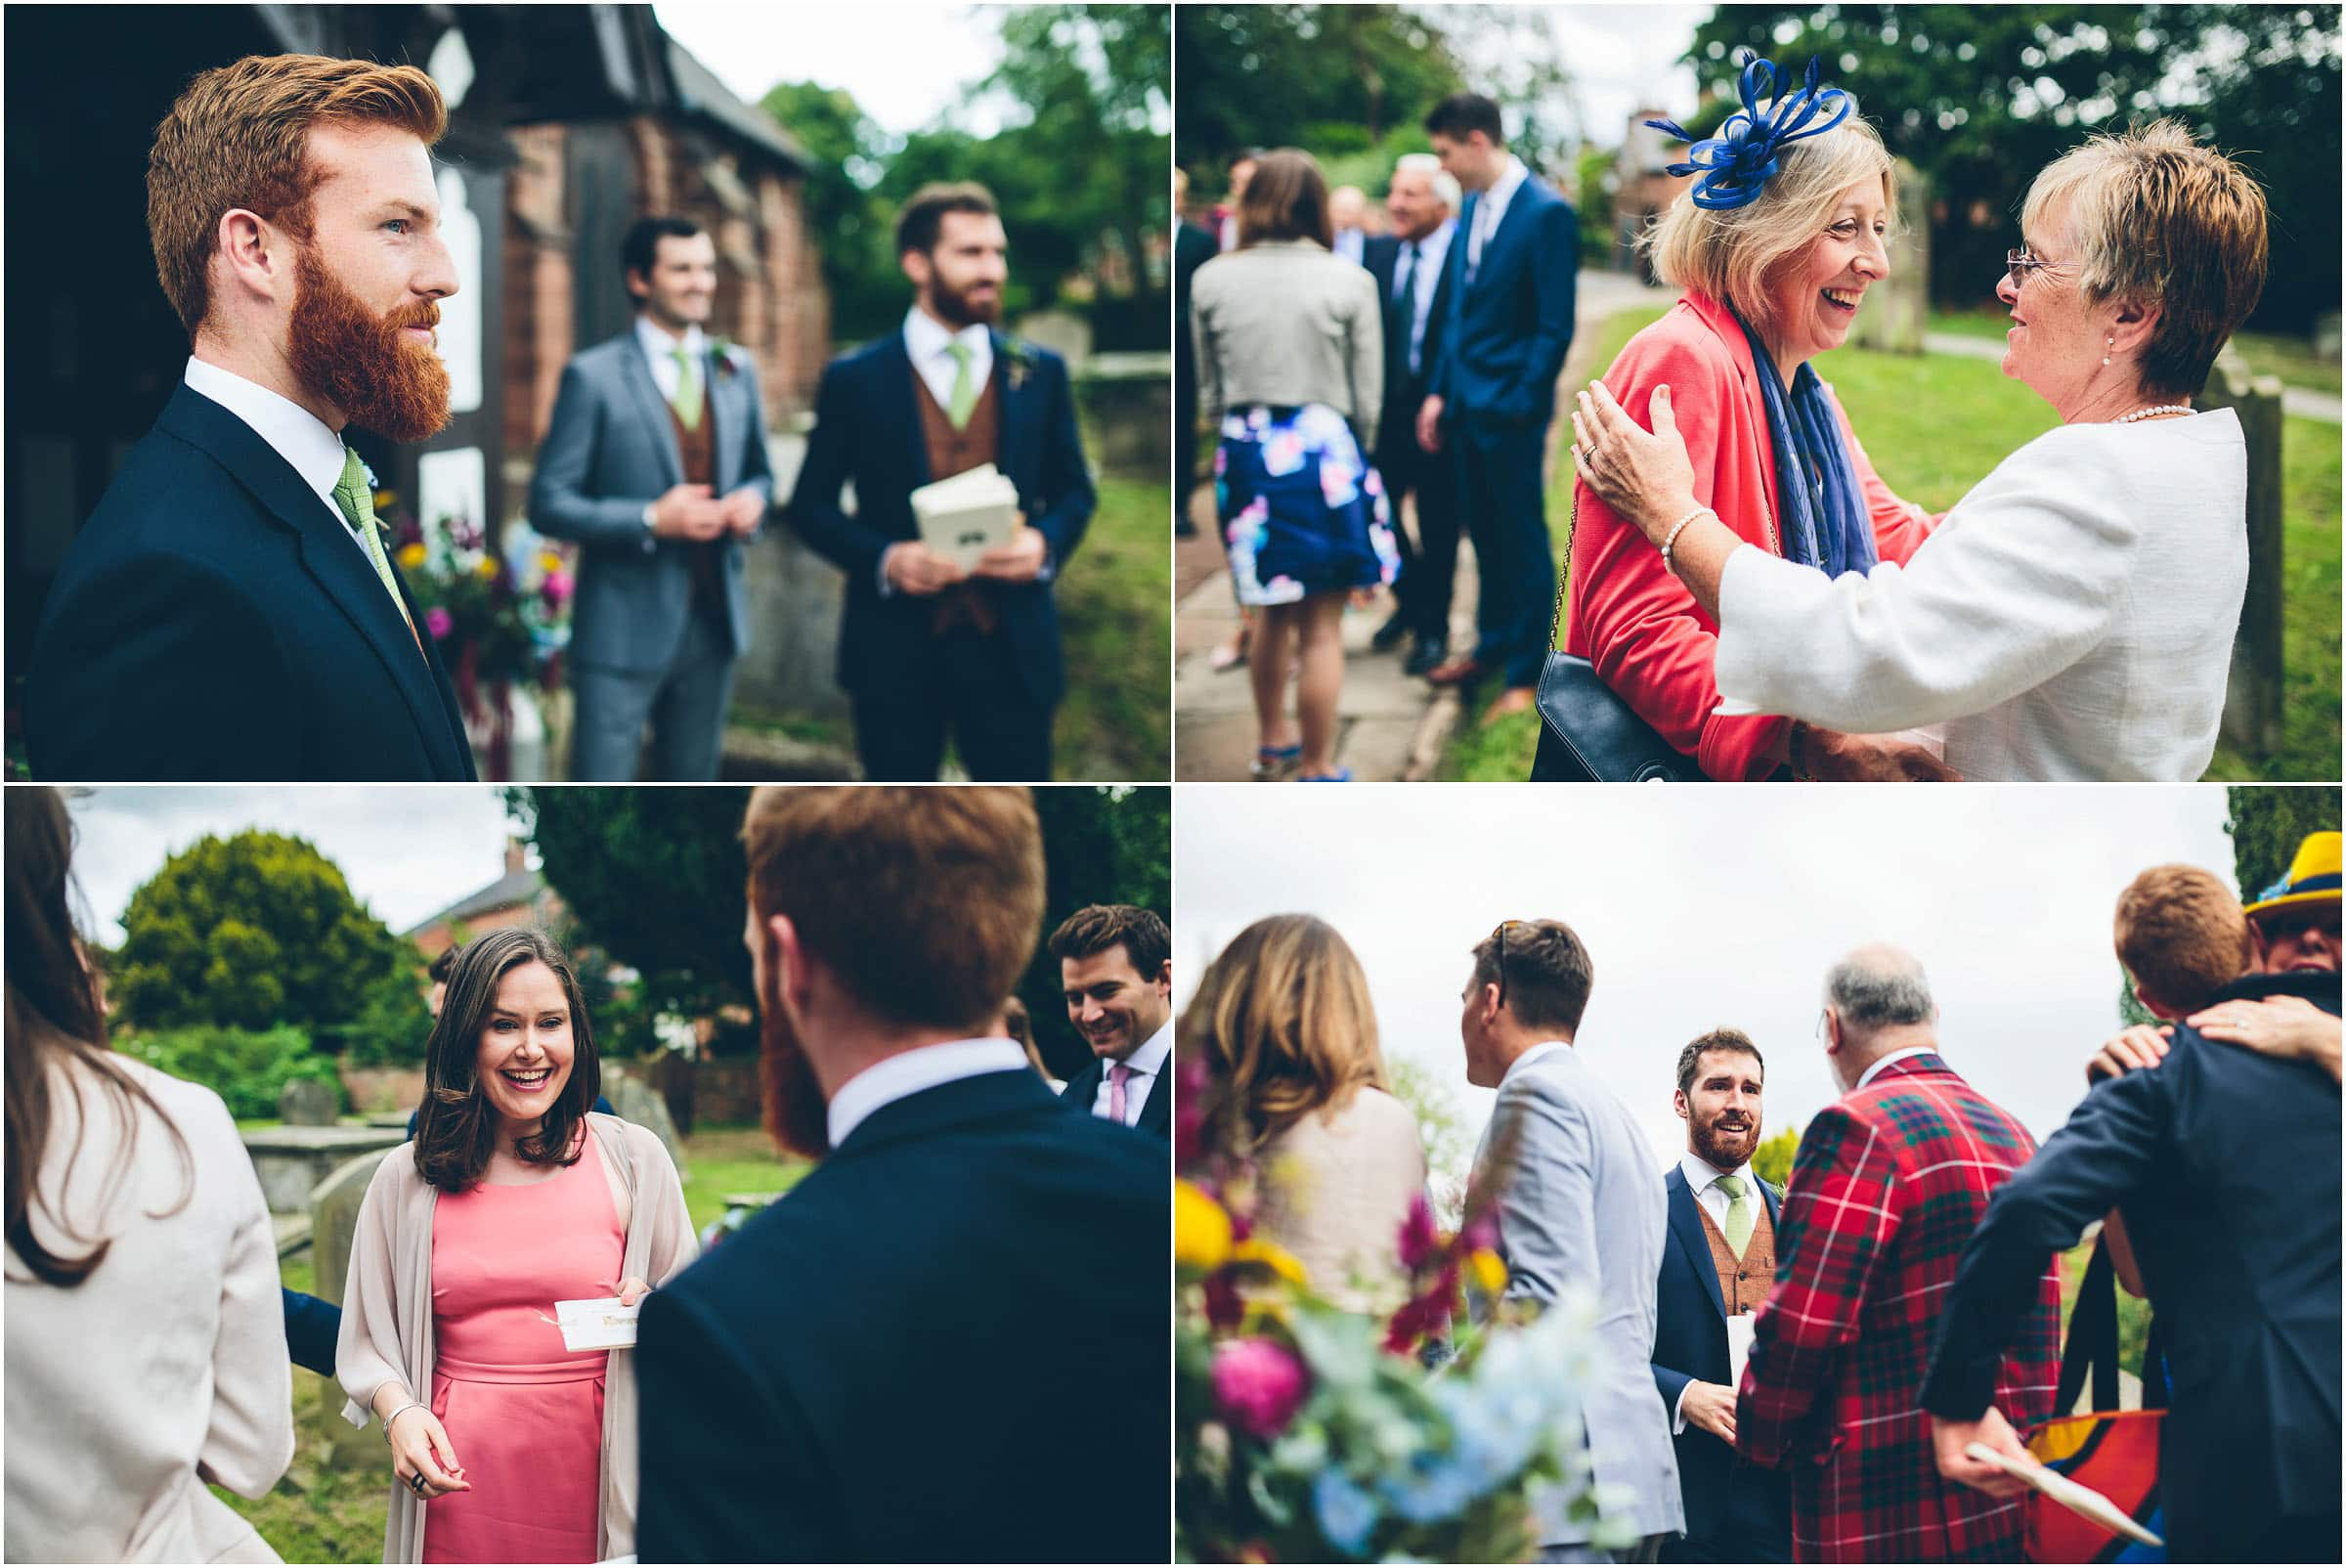 Harthill_Weddings_Wedding_Photography_0028